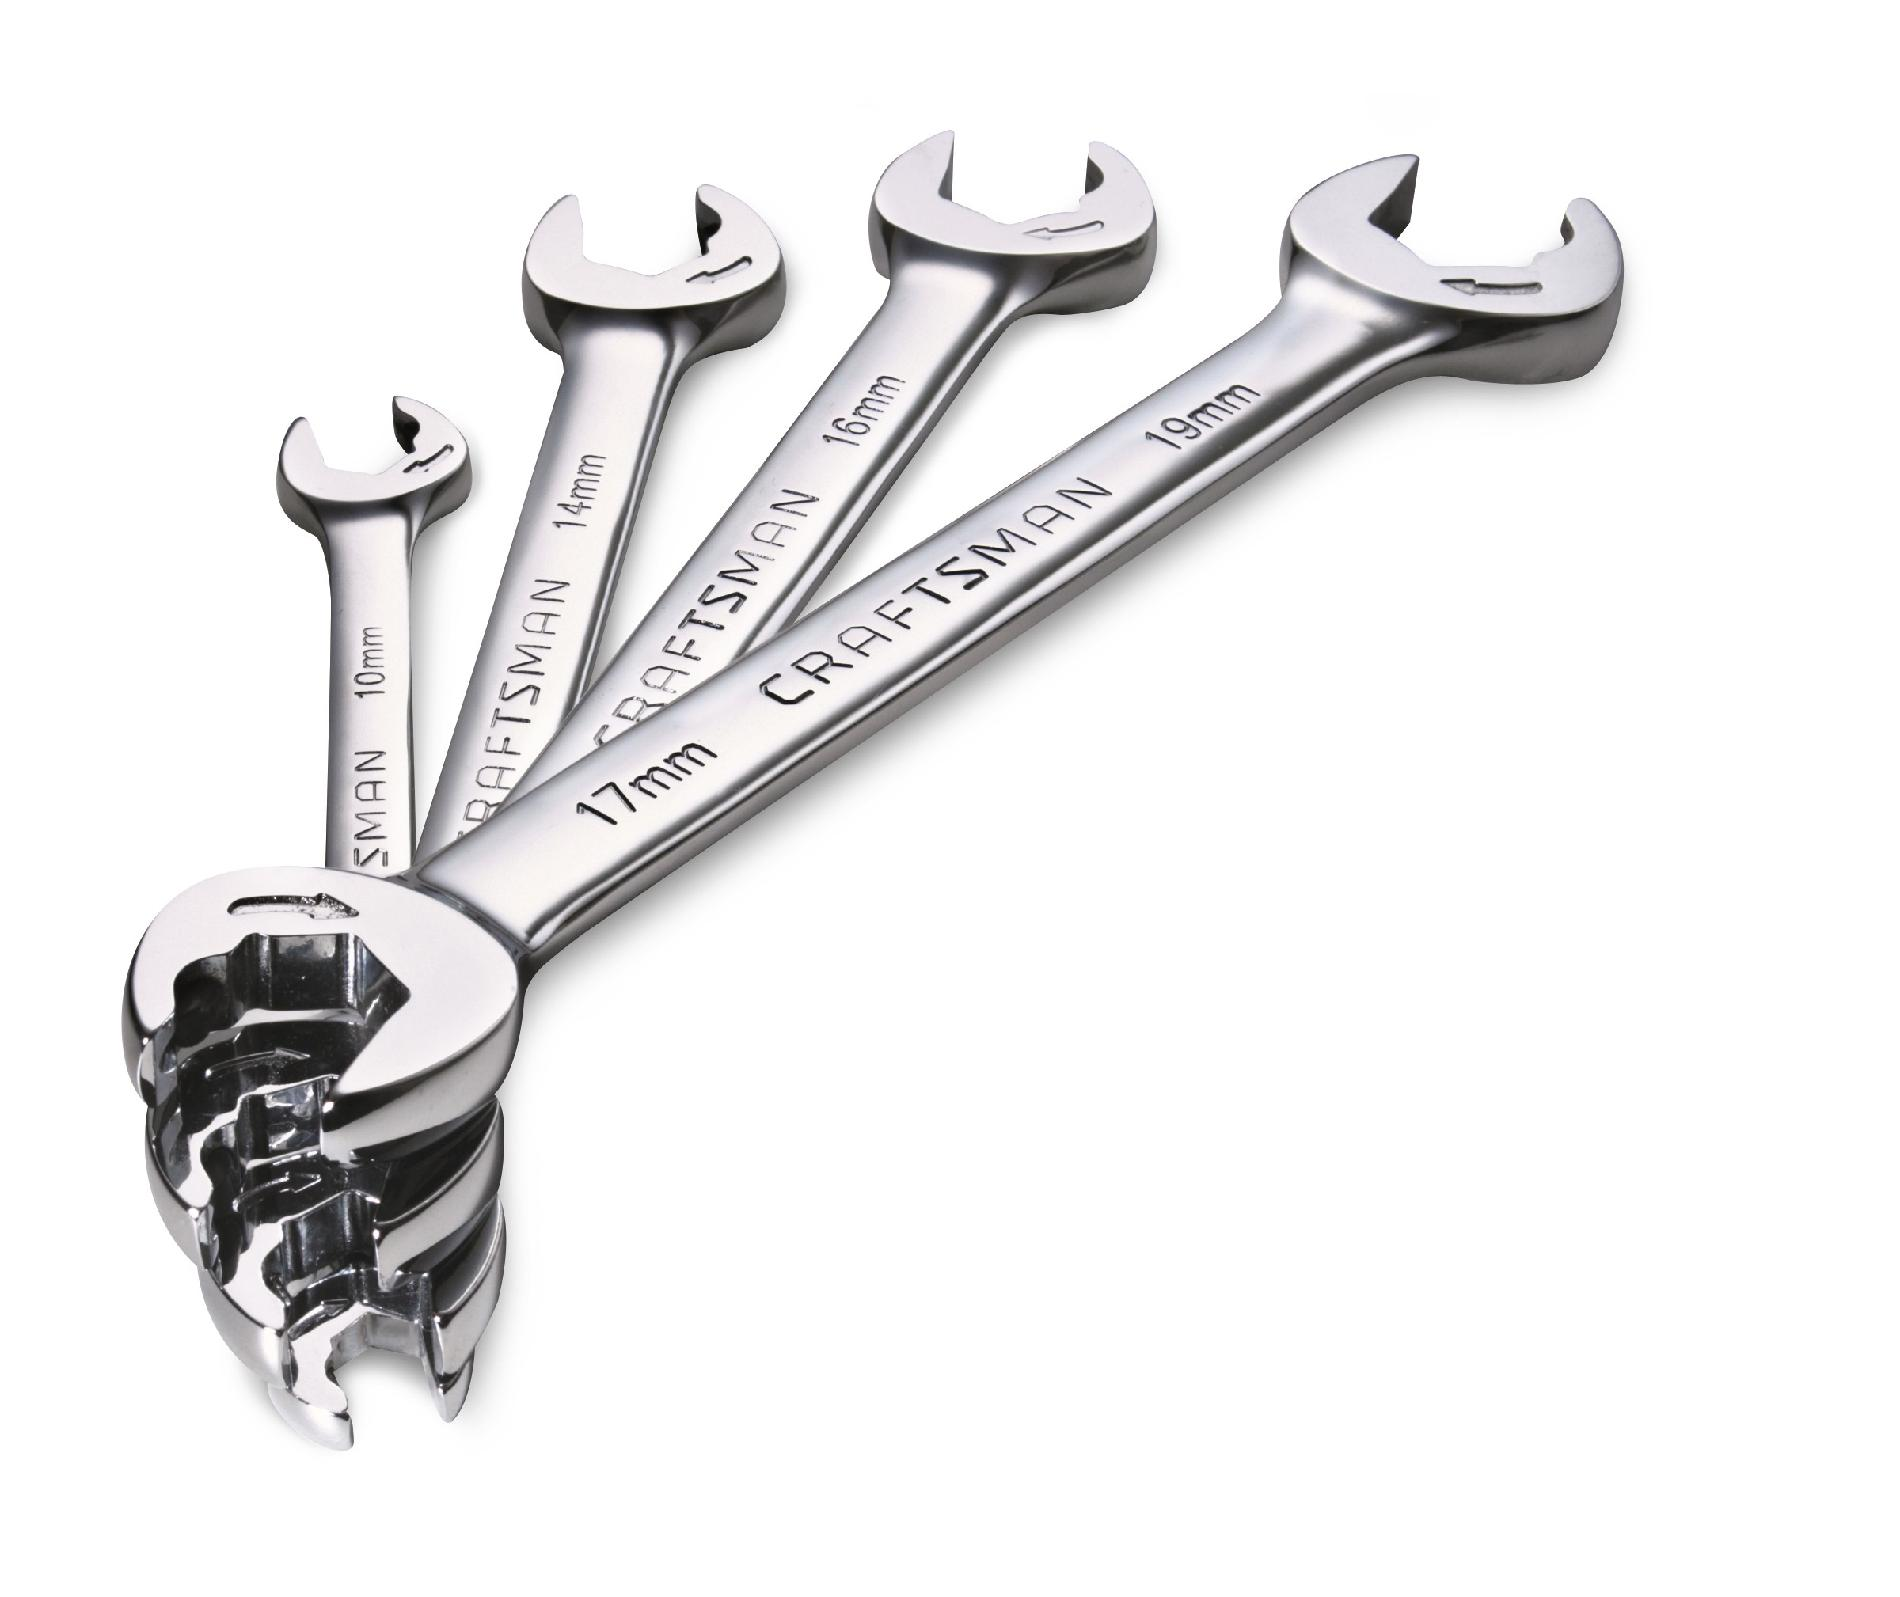 Craftsman 4 pc. Standard SAE Open End Ratcheting Wrench Set